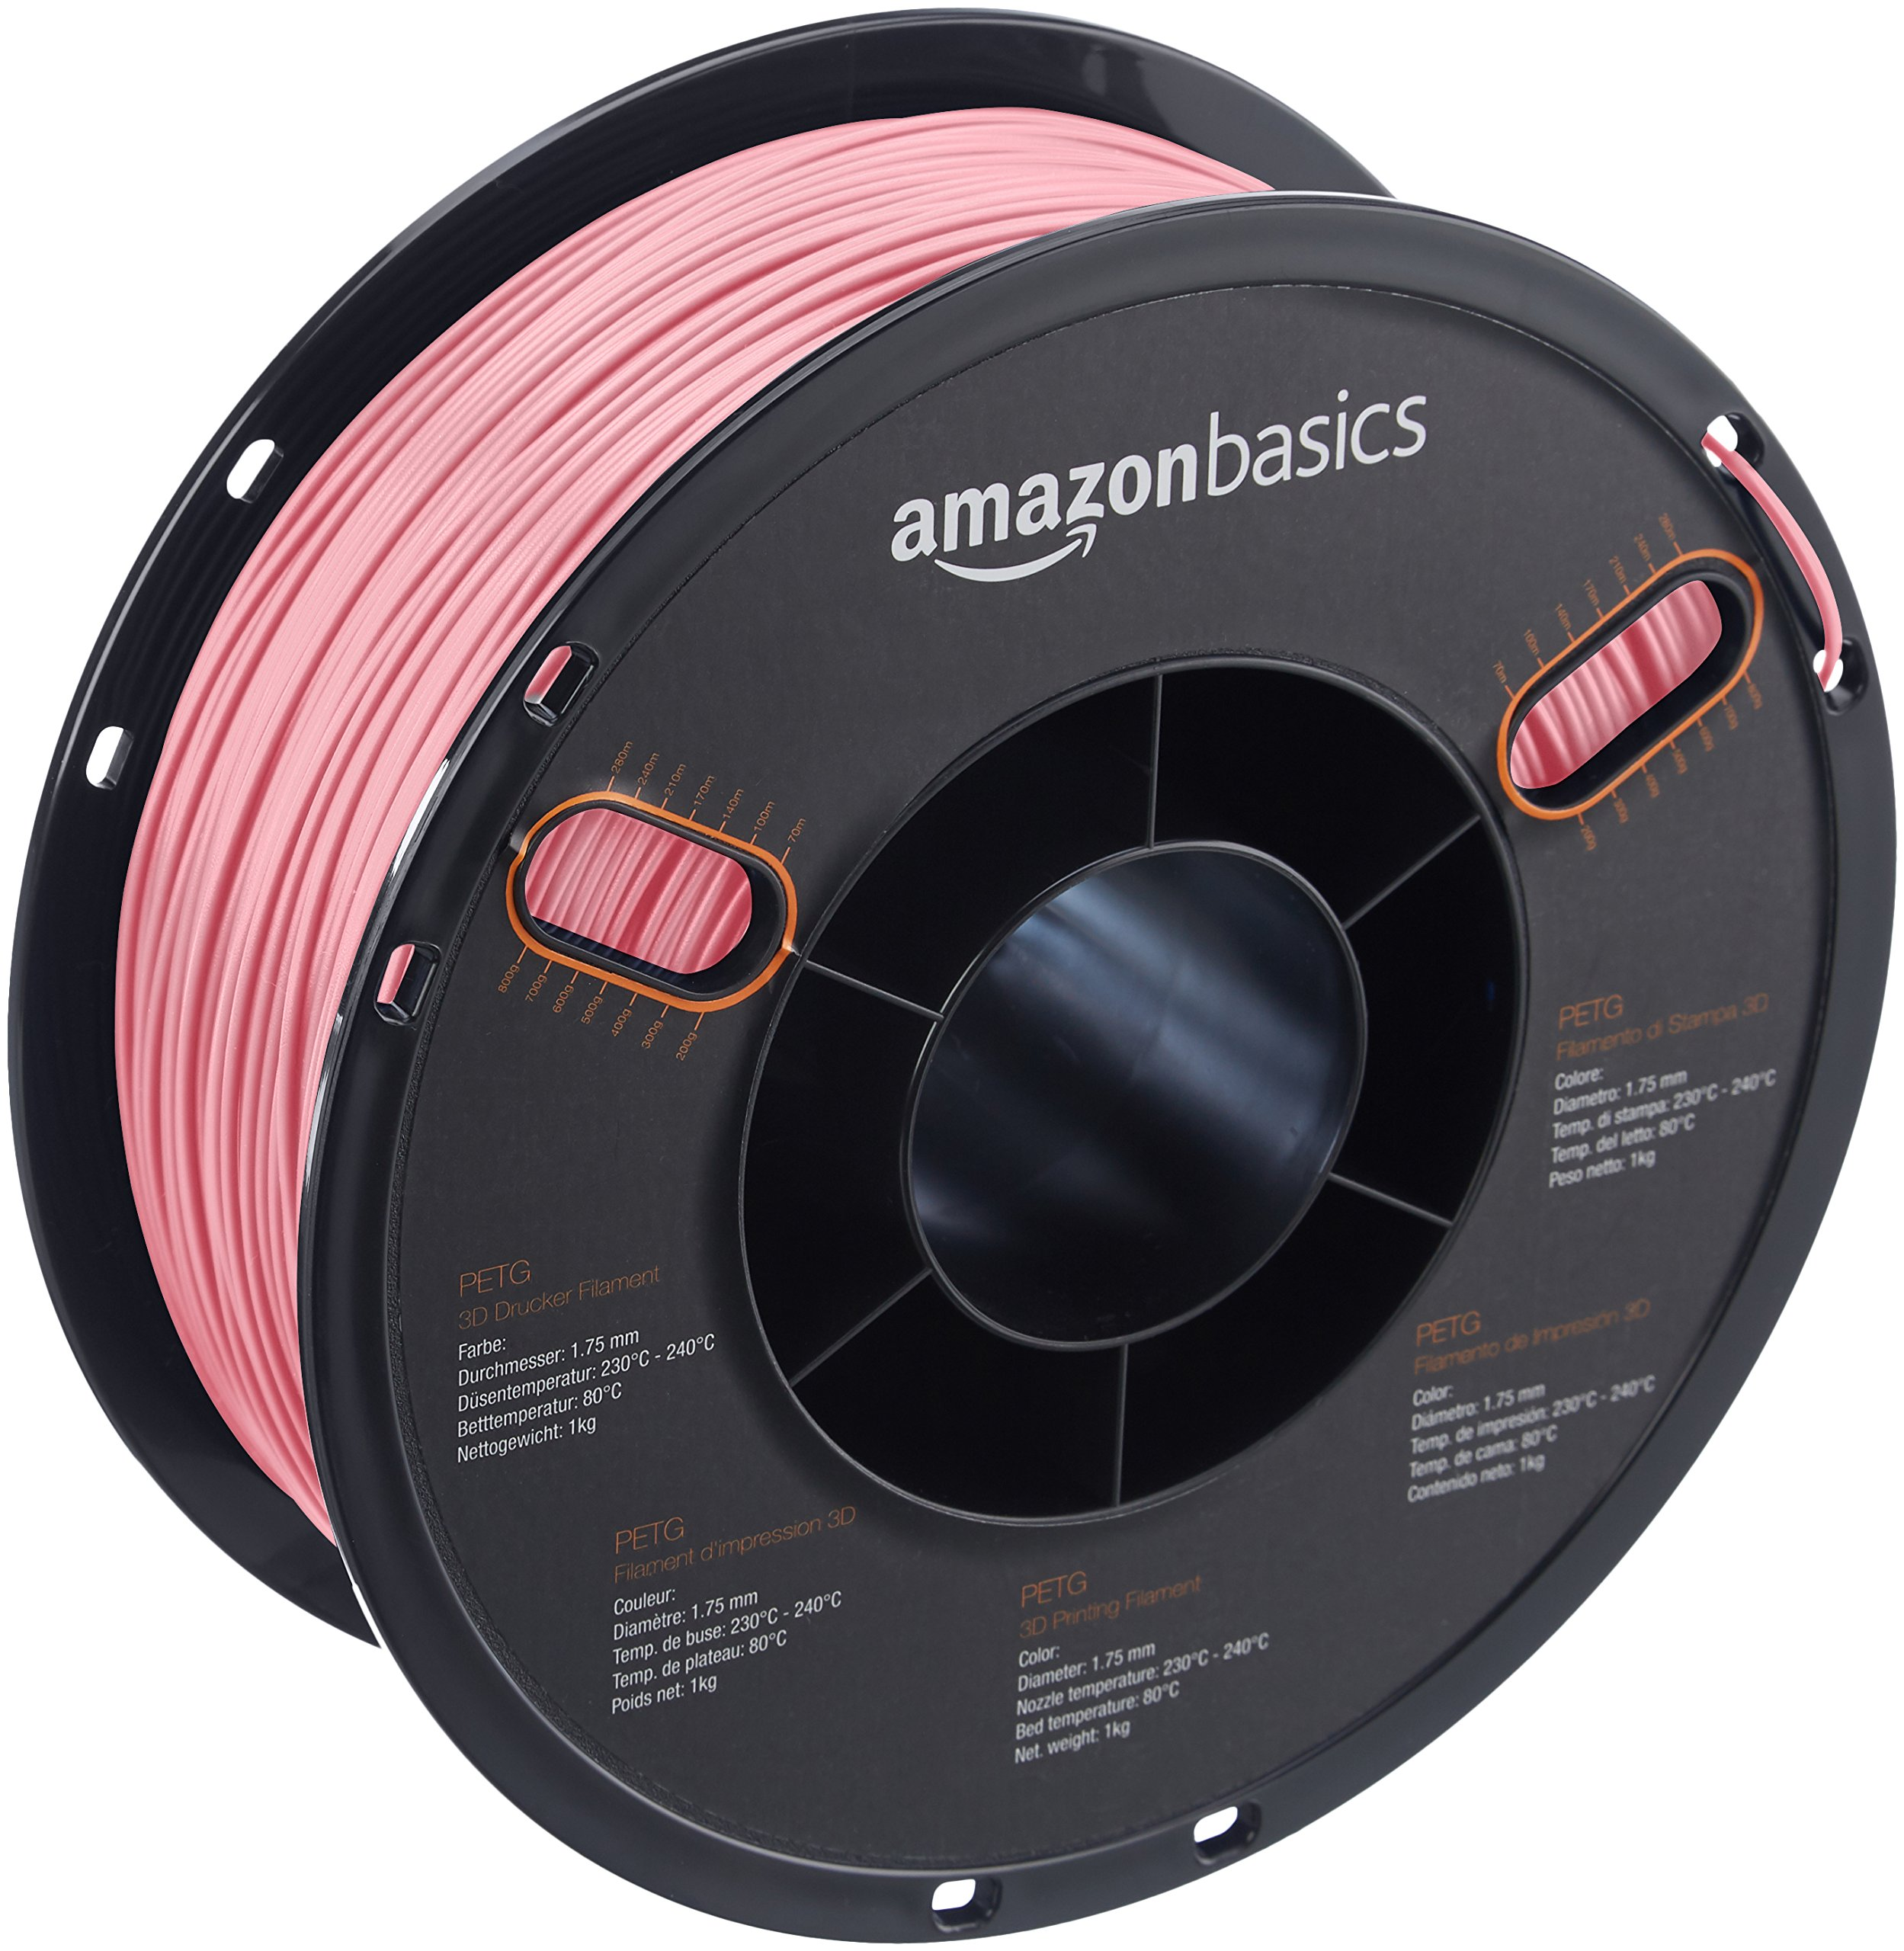 AmazonBasics PETG 3D Printer Filament, 1.75mm